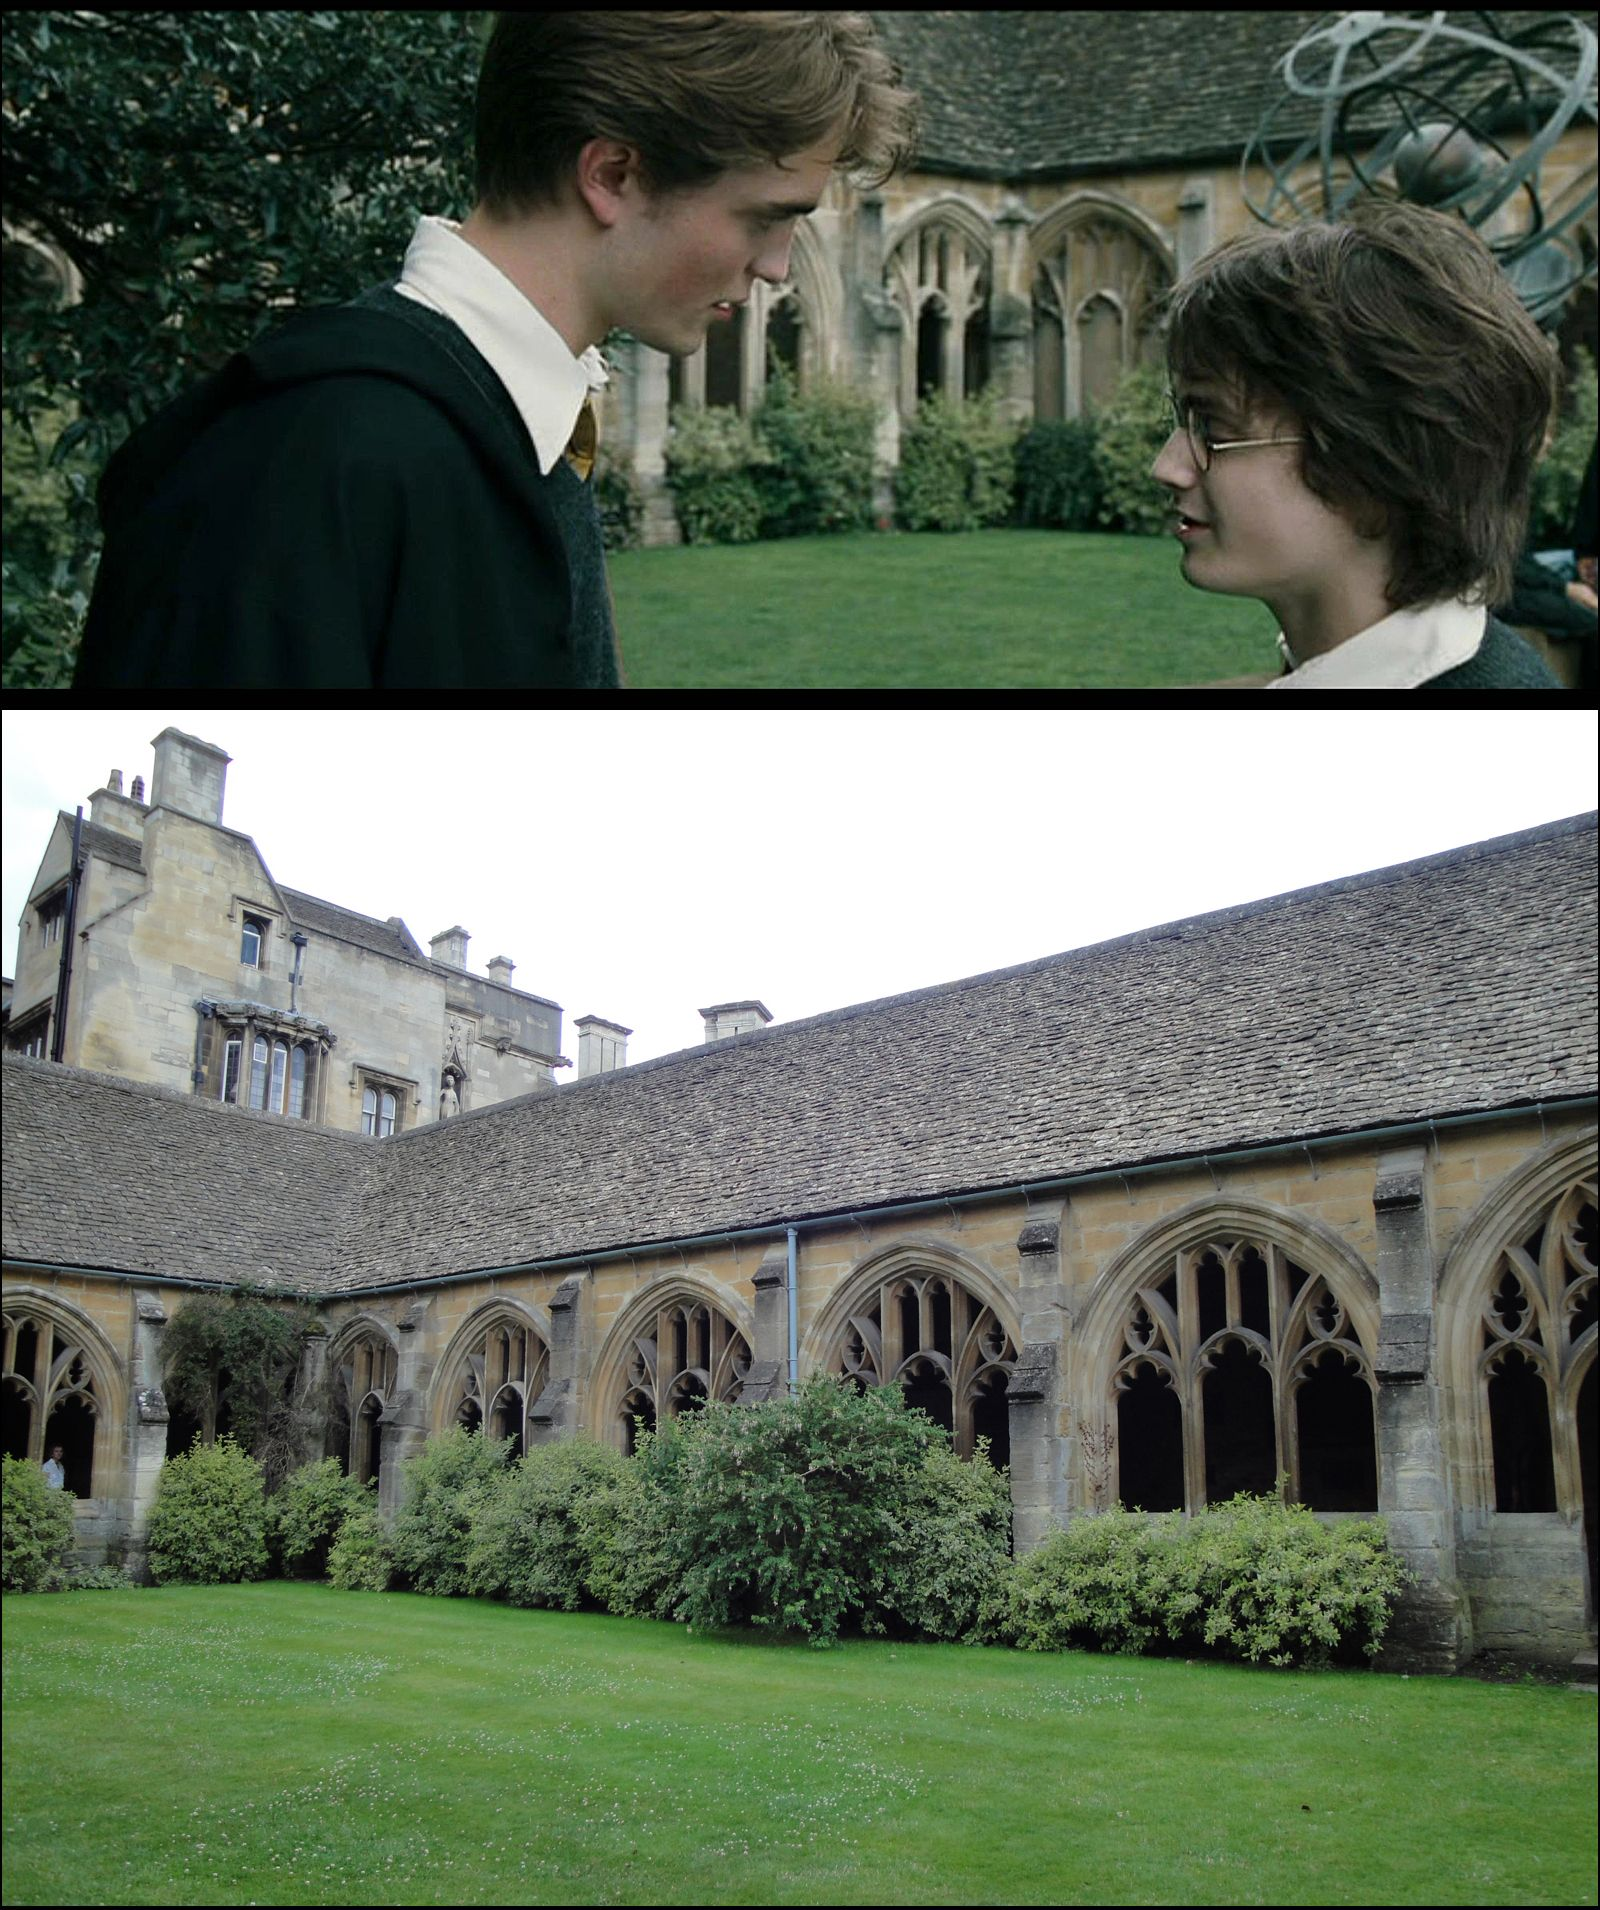 Goblet Of Fire Scenes Of Harry Warning Cedric About The First Tri Wizard Challenge Were Filmed In The Cloisters Of O Harry Potter Places Hogwarts The Cloisters